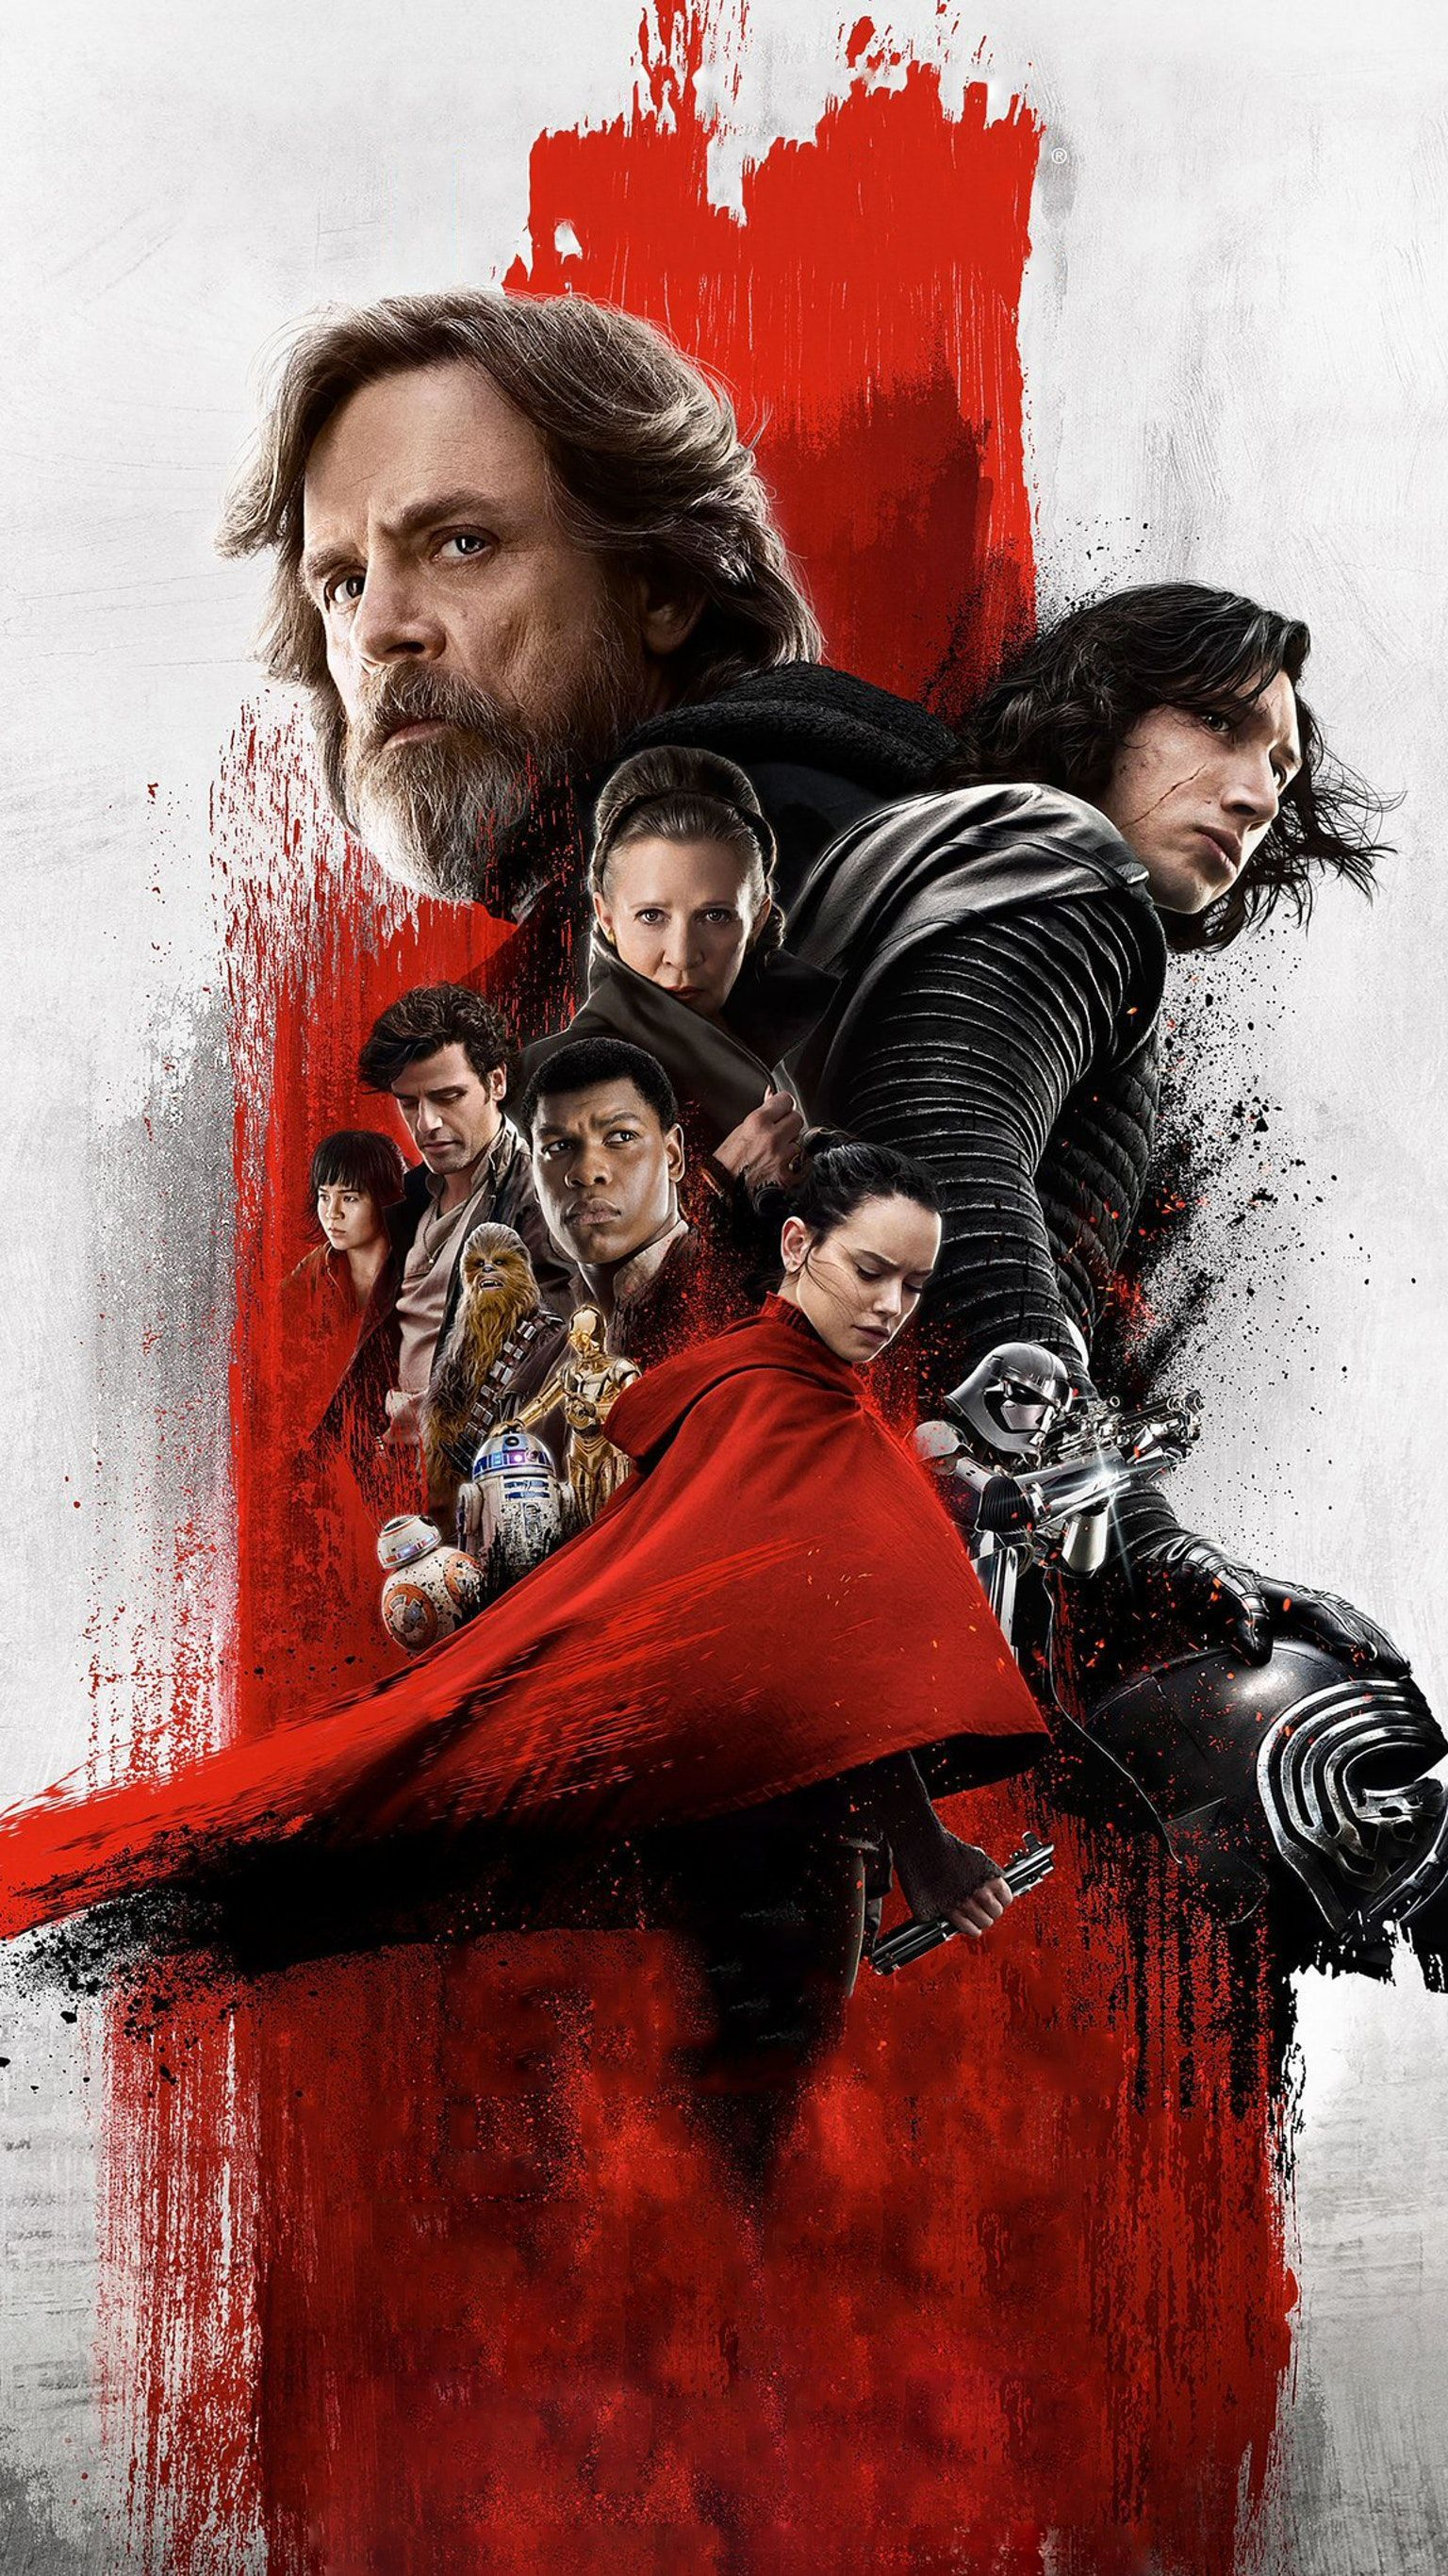 The Last Jedi Star Wars Wallpapers Top Free The Last Jedi Star